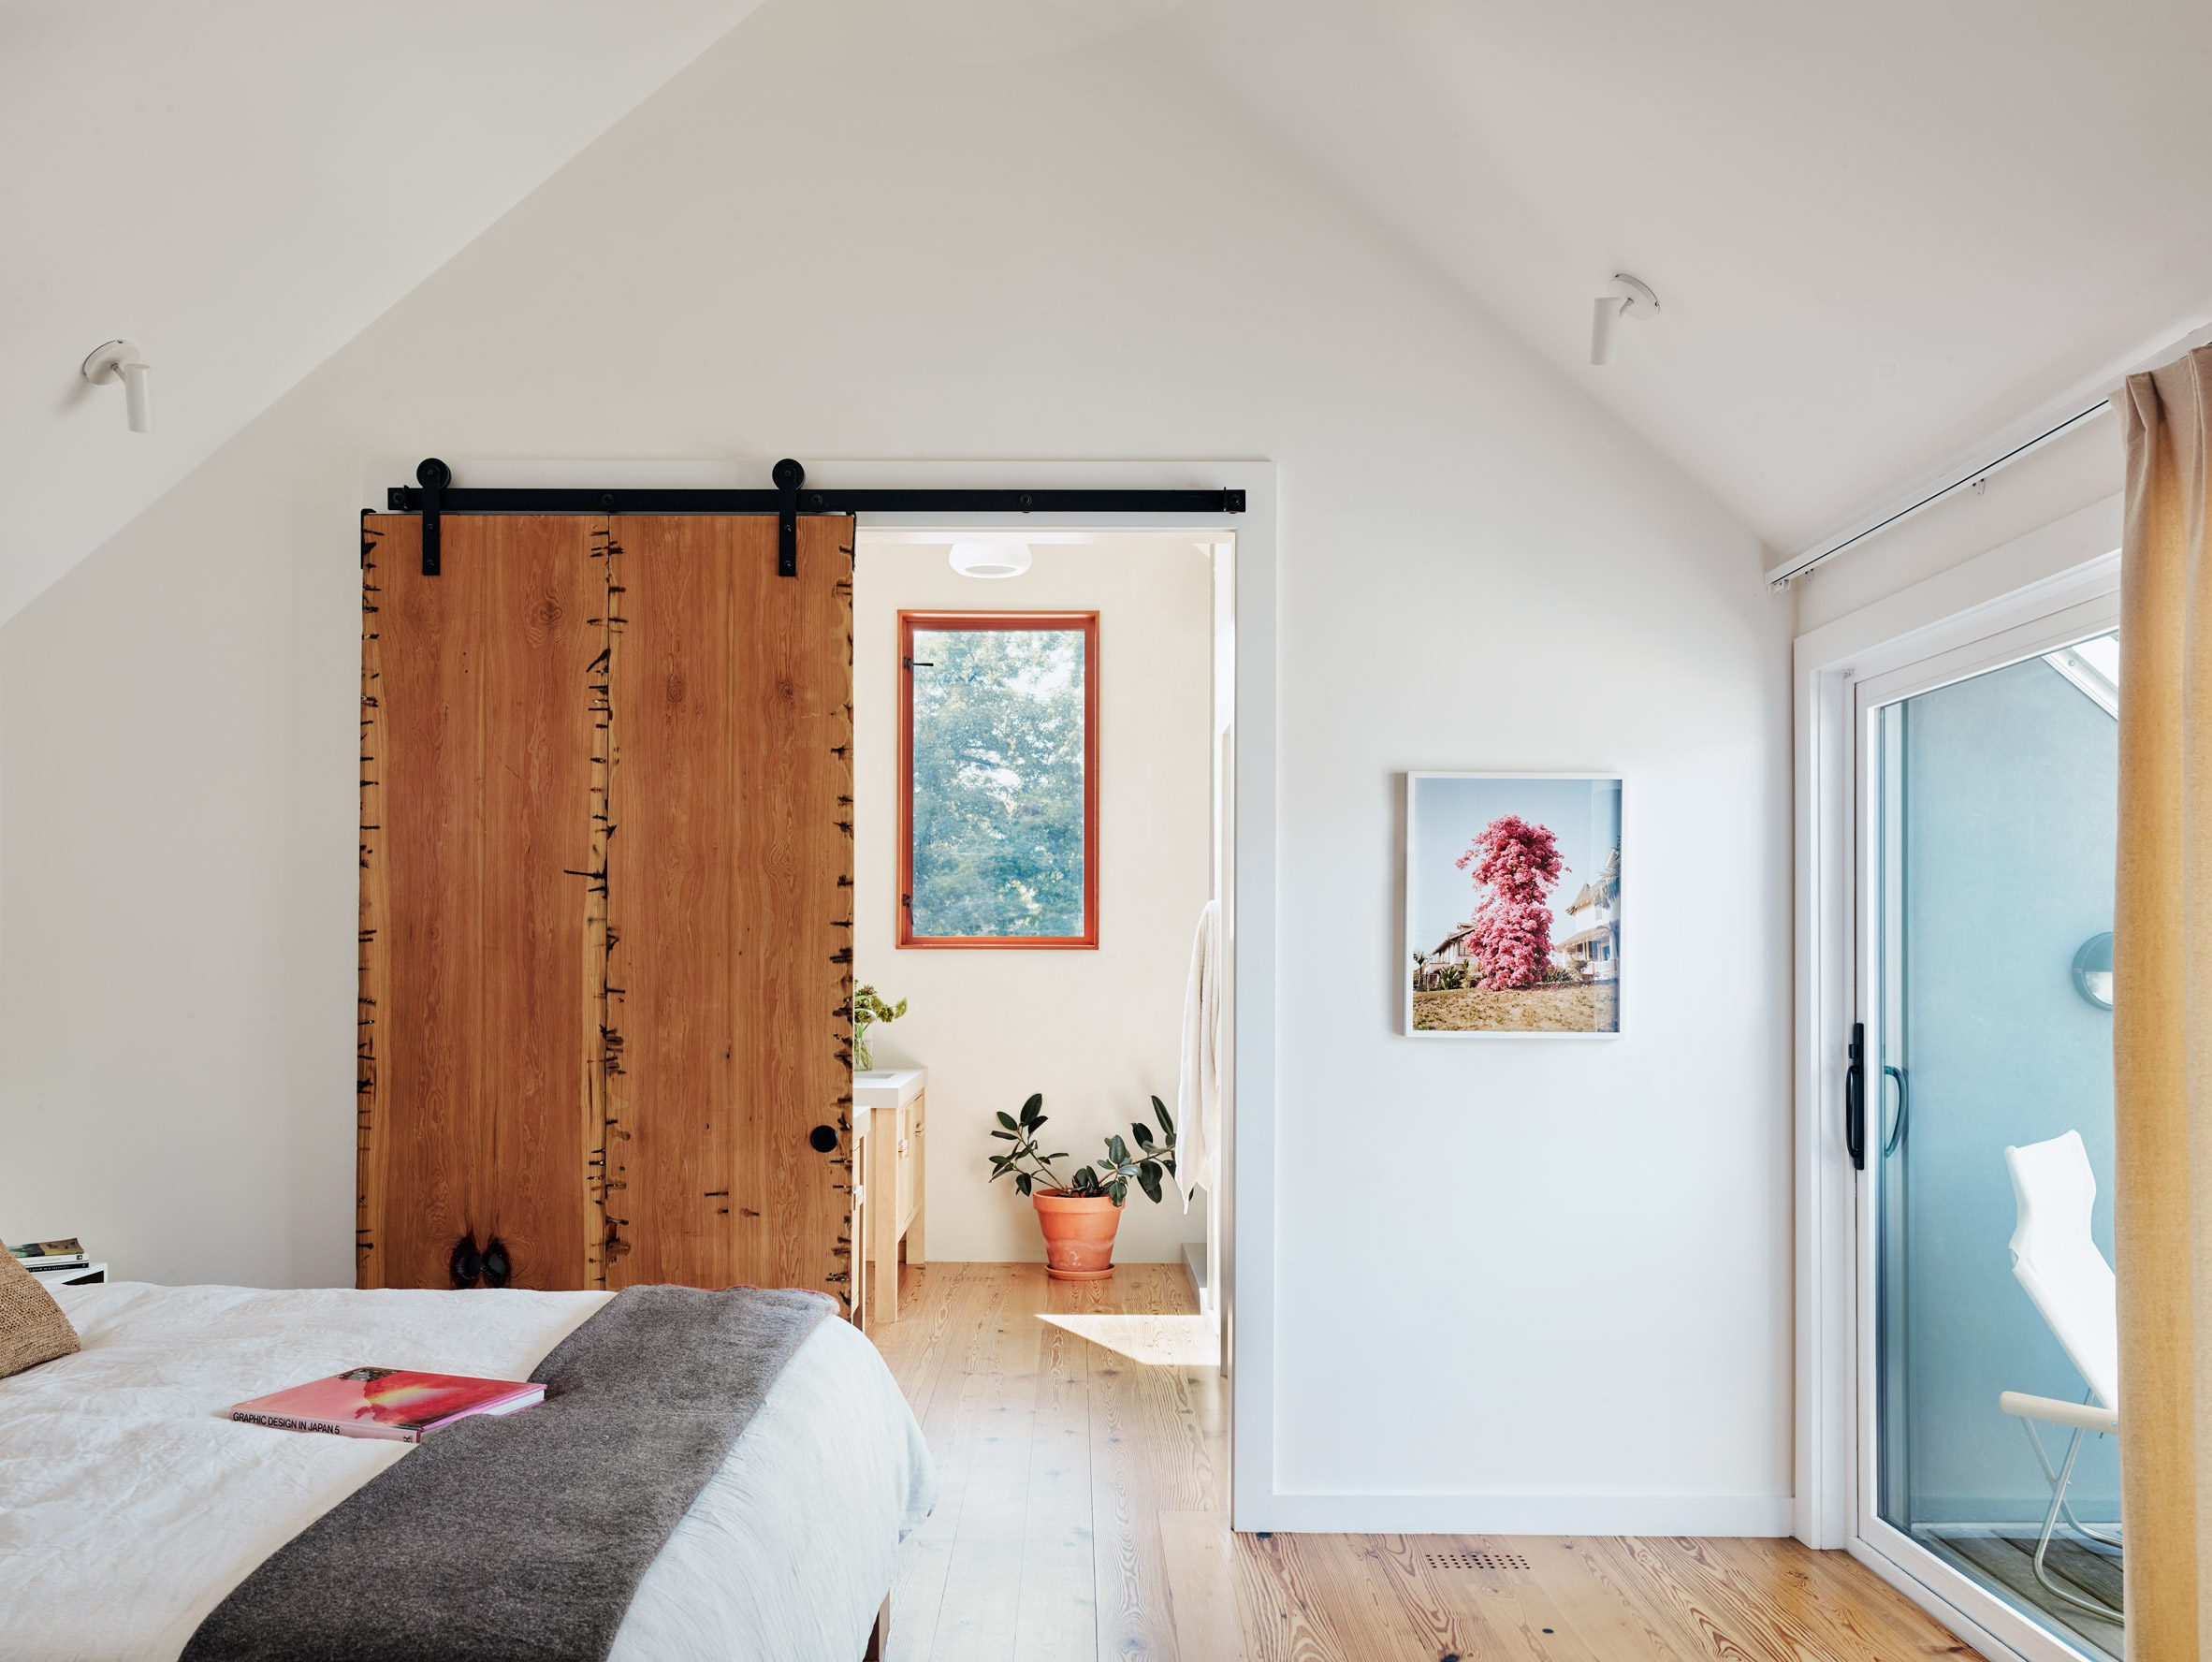 The master suite reveals the house's gabled roof